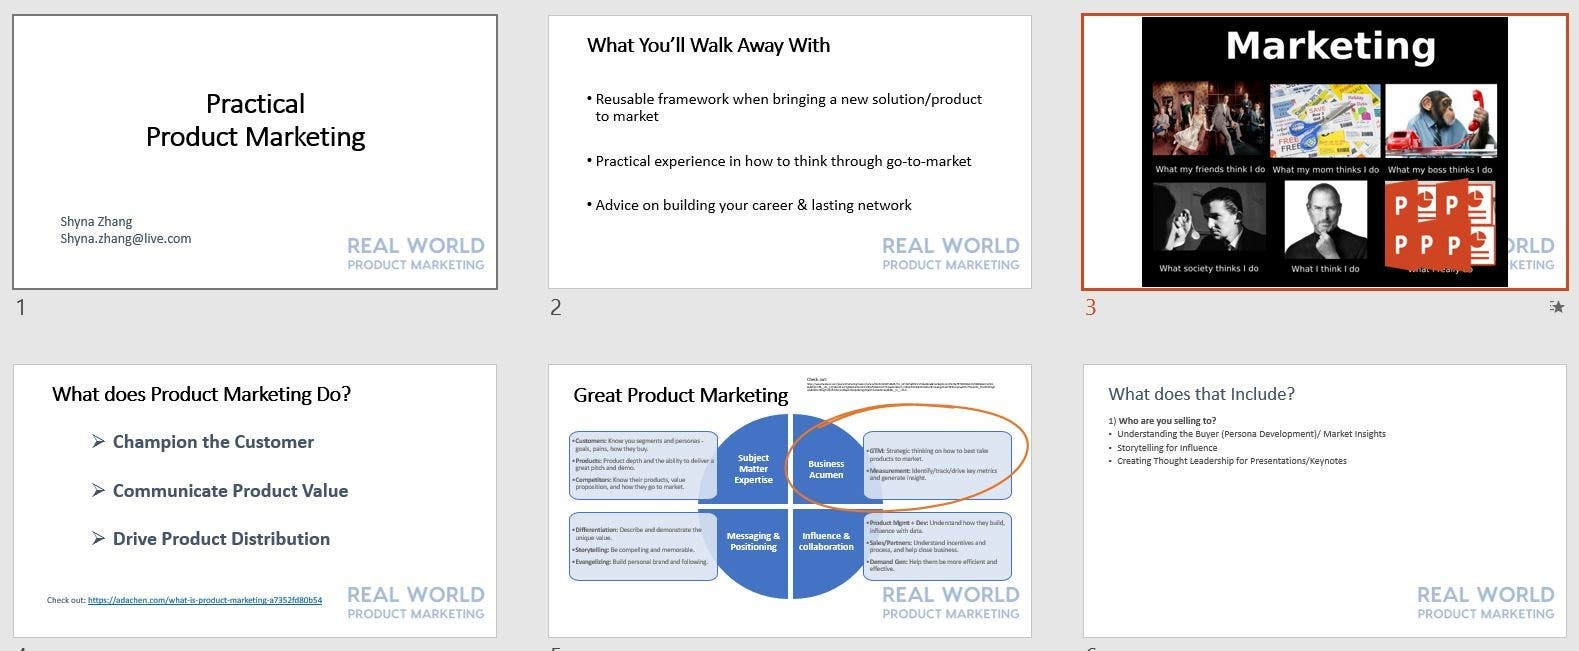 The Entire Real World Product Marketing Academy